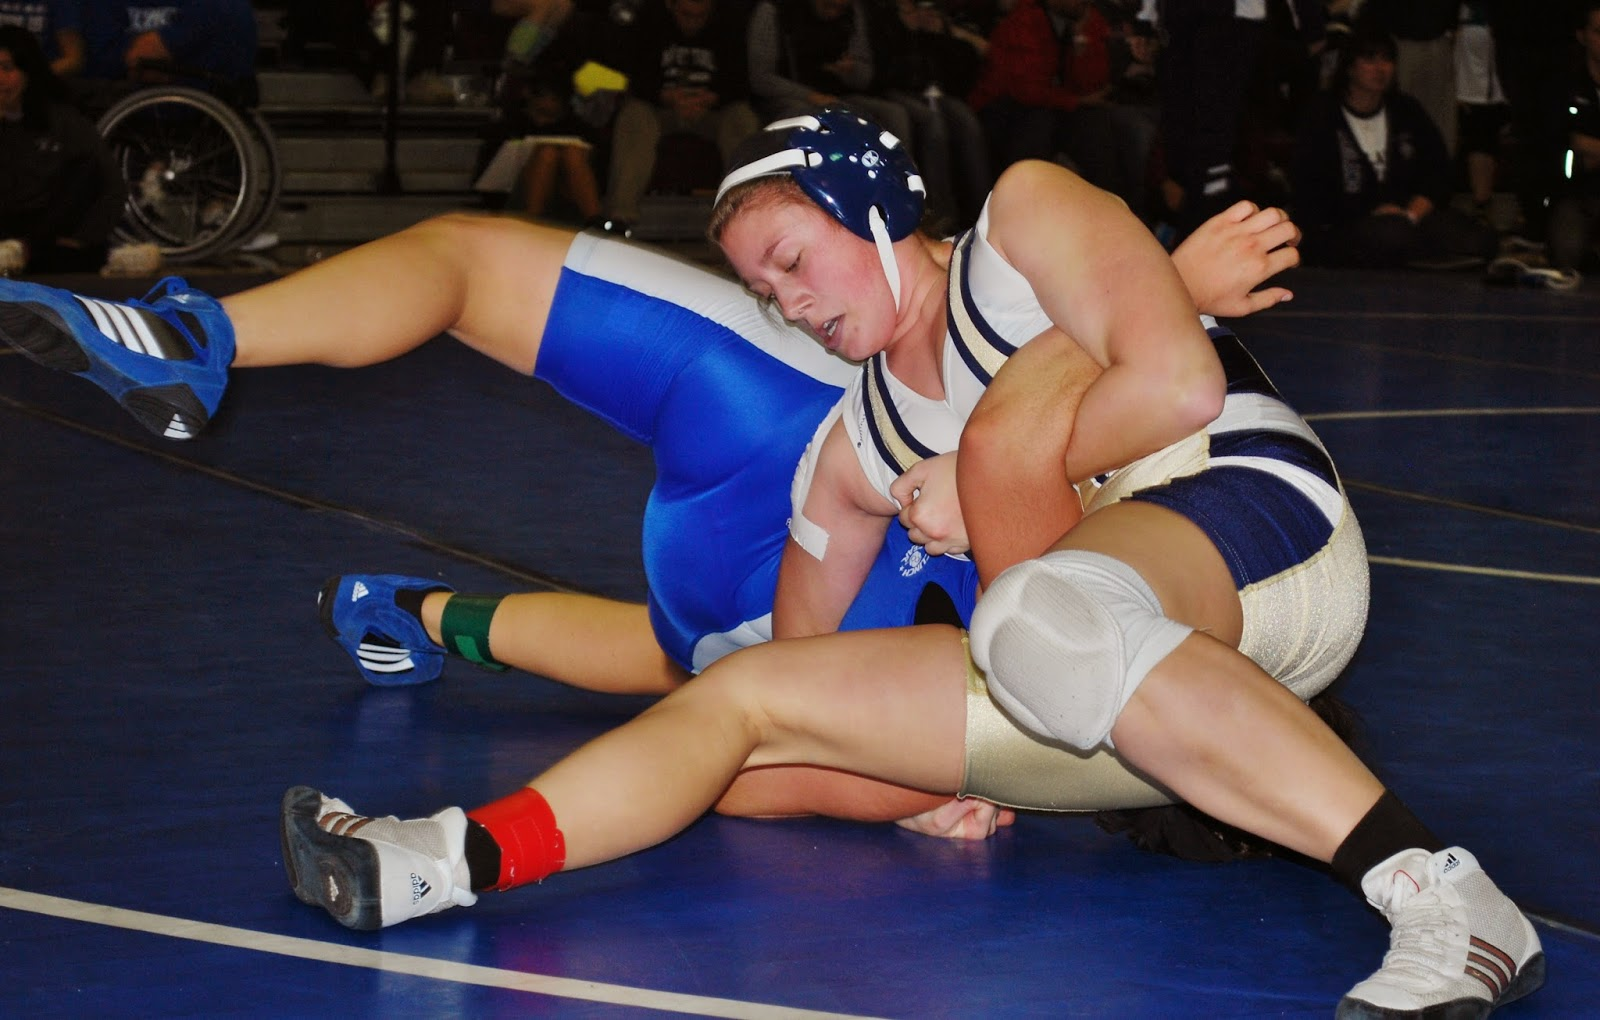 Masters' Wrestling, Boys' Basketball 2nd Round Today